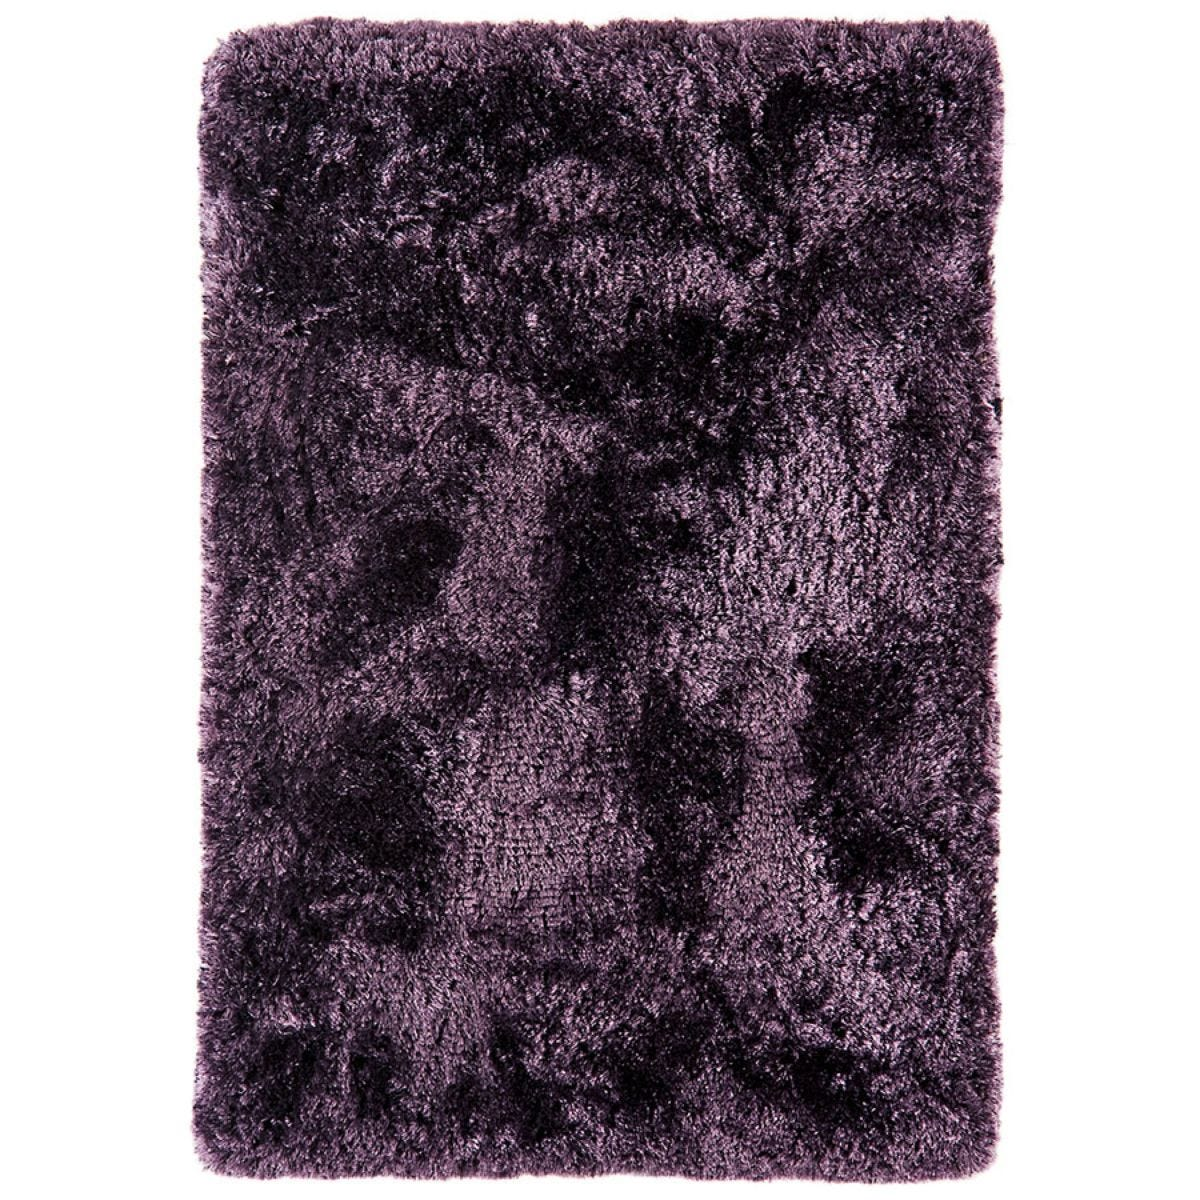 Asiatic Plush Shaggy Rug, 140 x 200cm - Purple